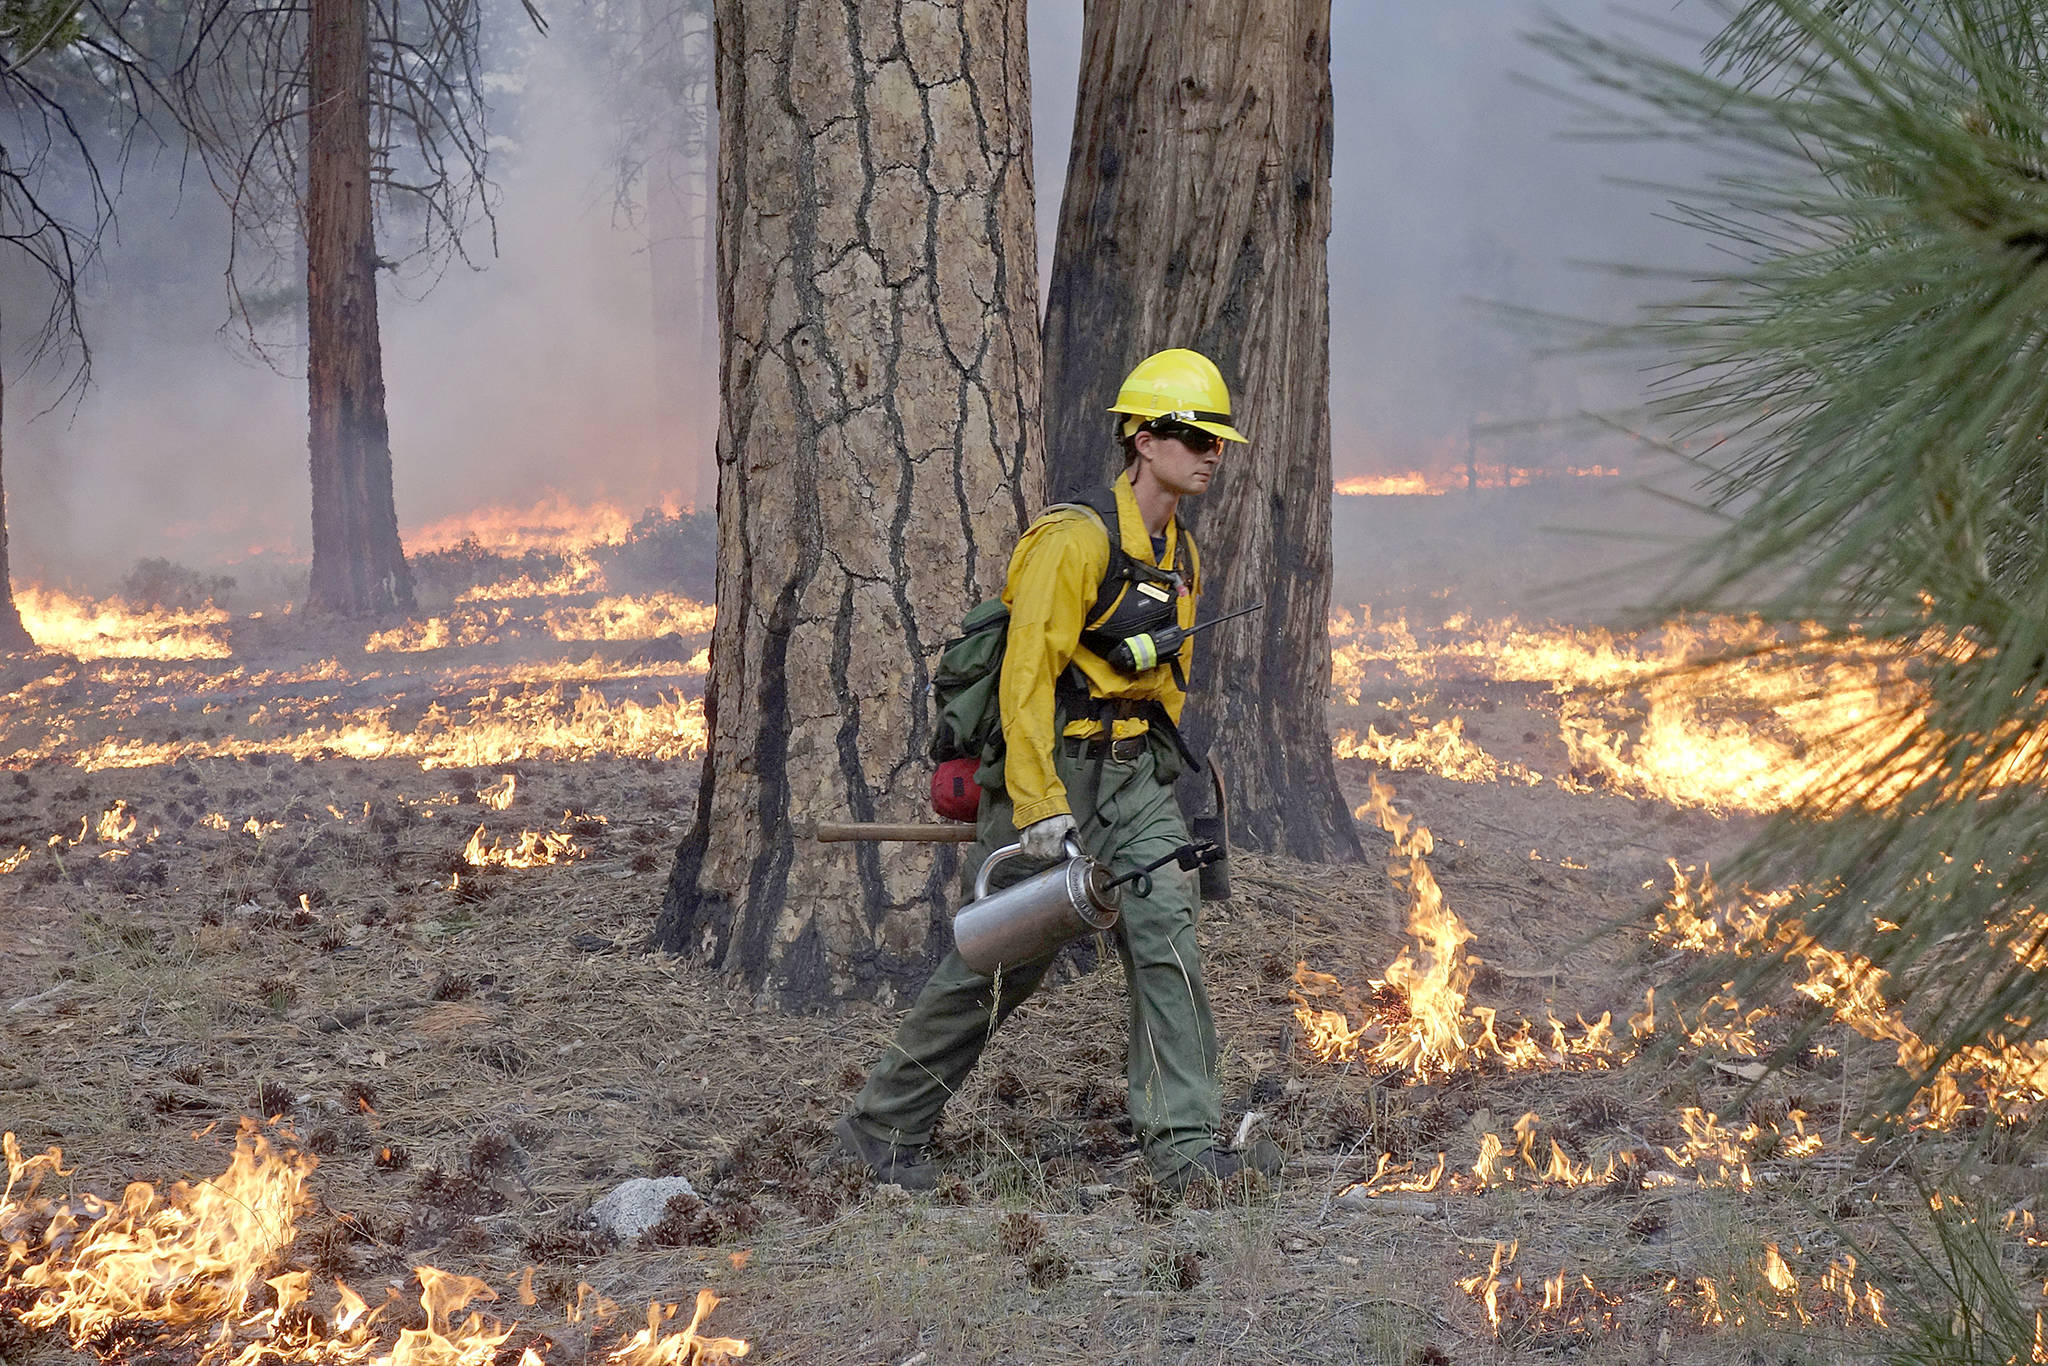 Firefighter Andrew Pettit walks among the flames during a control burn on June 11, 2019 in Cedar Grove at Kings Canyon National Park, California. (Brian Melley/The Associated Press)